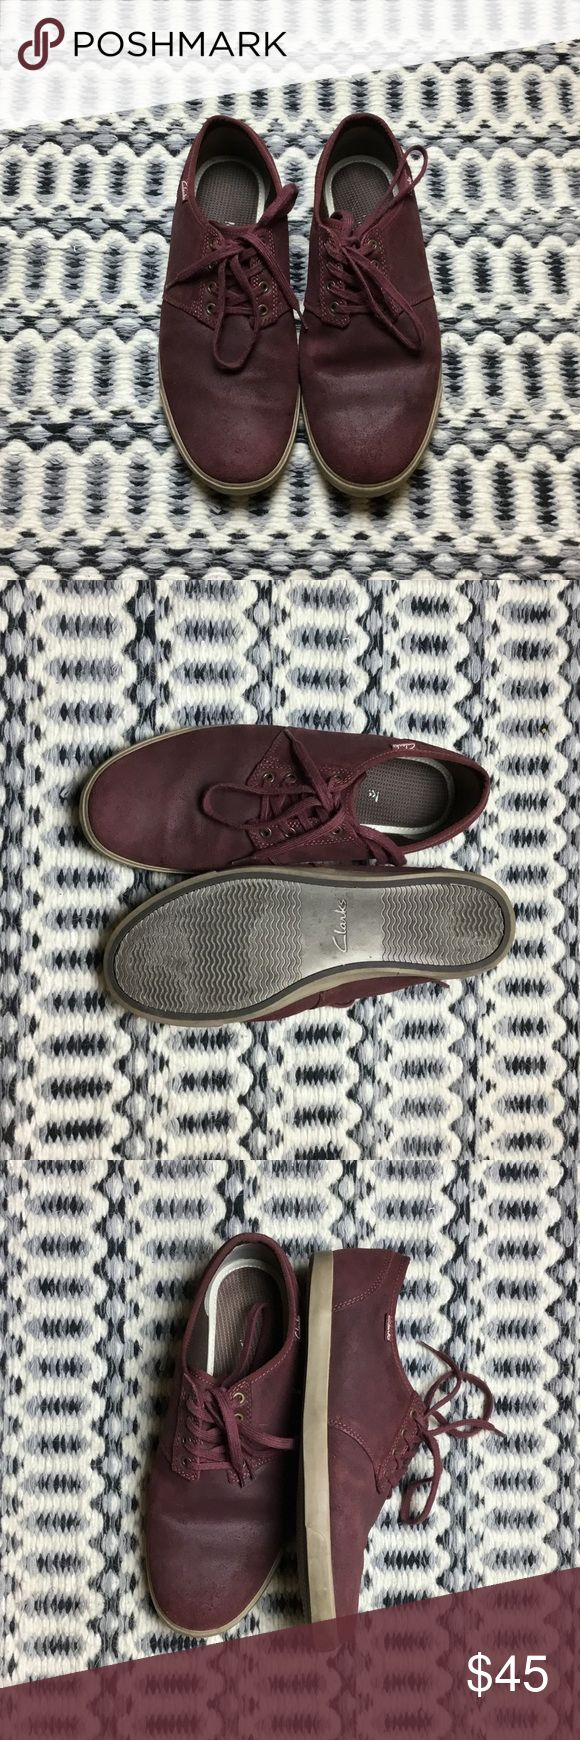 Clarks Men's Plimsoll A premium version of the classic plimsoll with copper eyelets, and tan sole. Deep burgundy color, great way to get a pop of color to a casual outfit. Clarks Shoes Sneakers